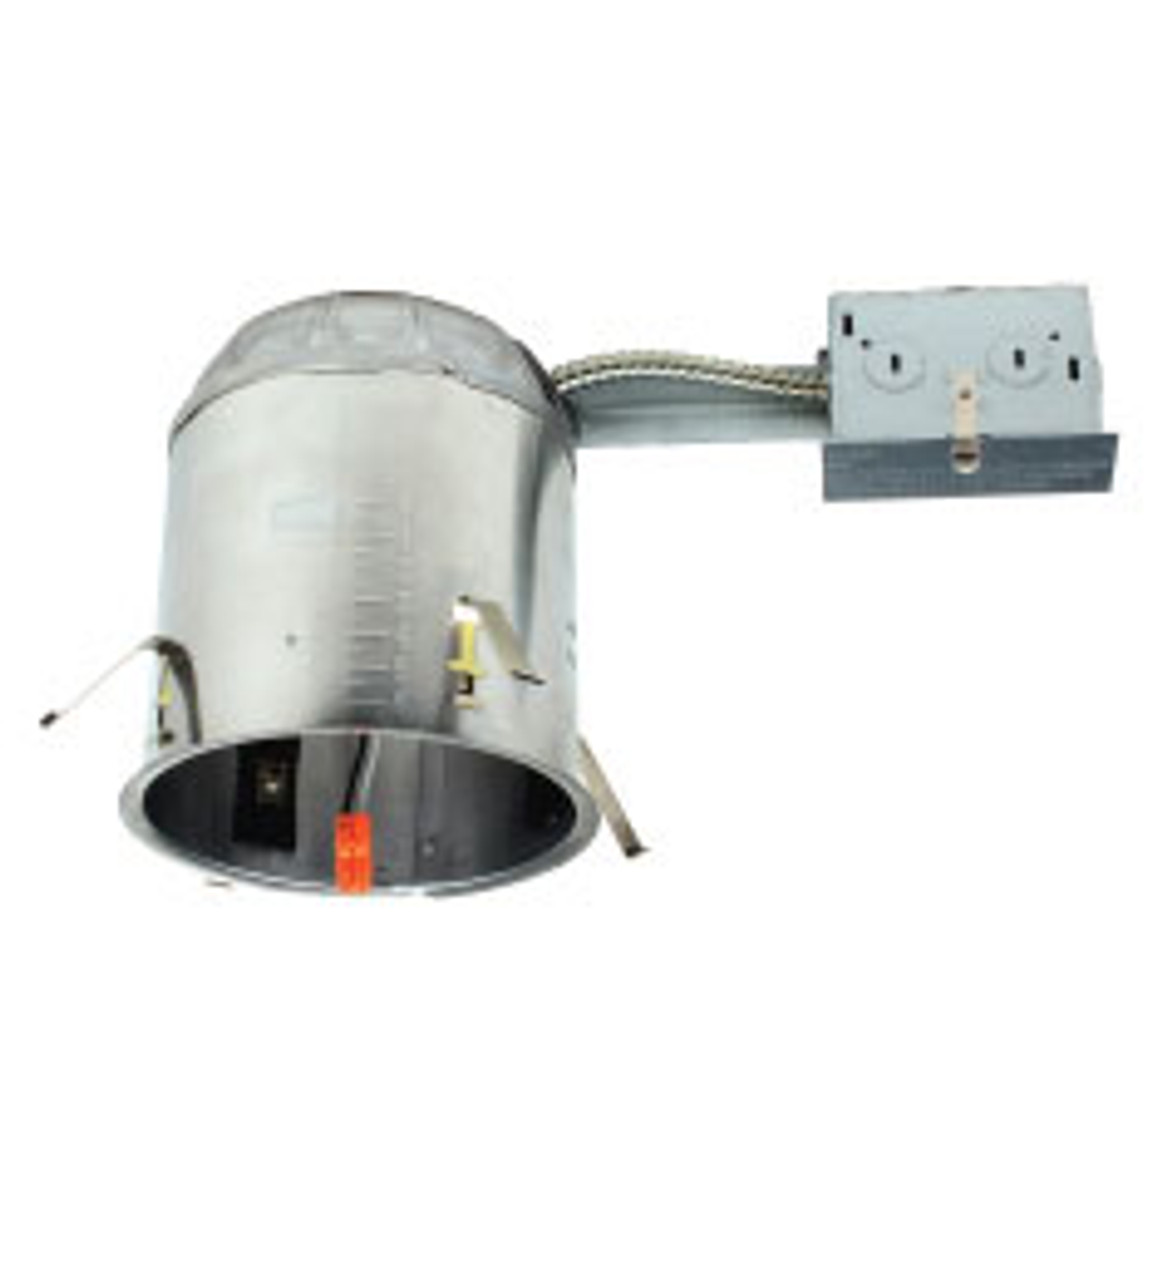 6 in. LED IC Recessed Housing Remodel Can with quick-connect (AL-6CLED-RIC)